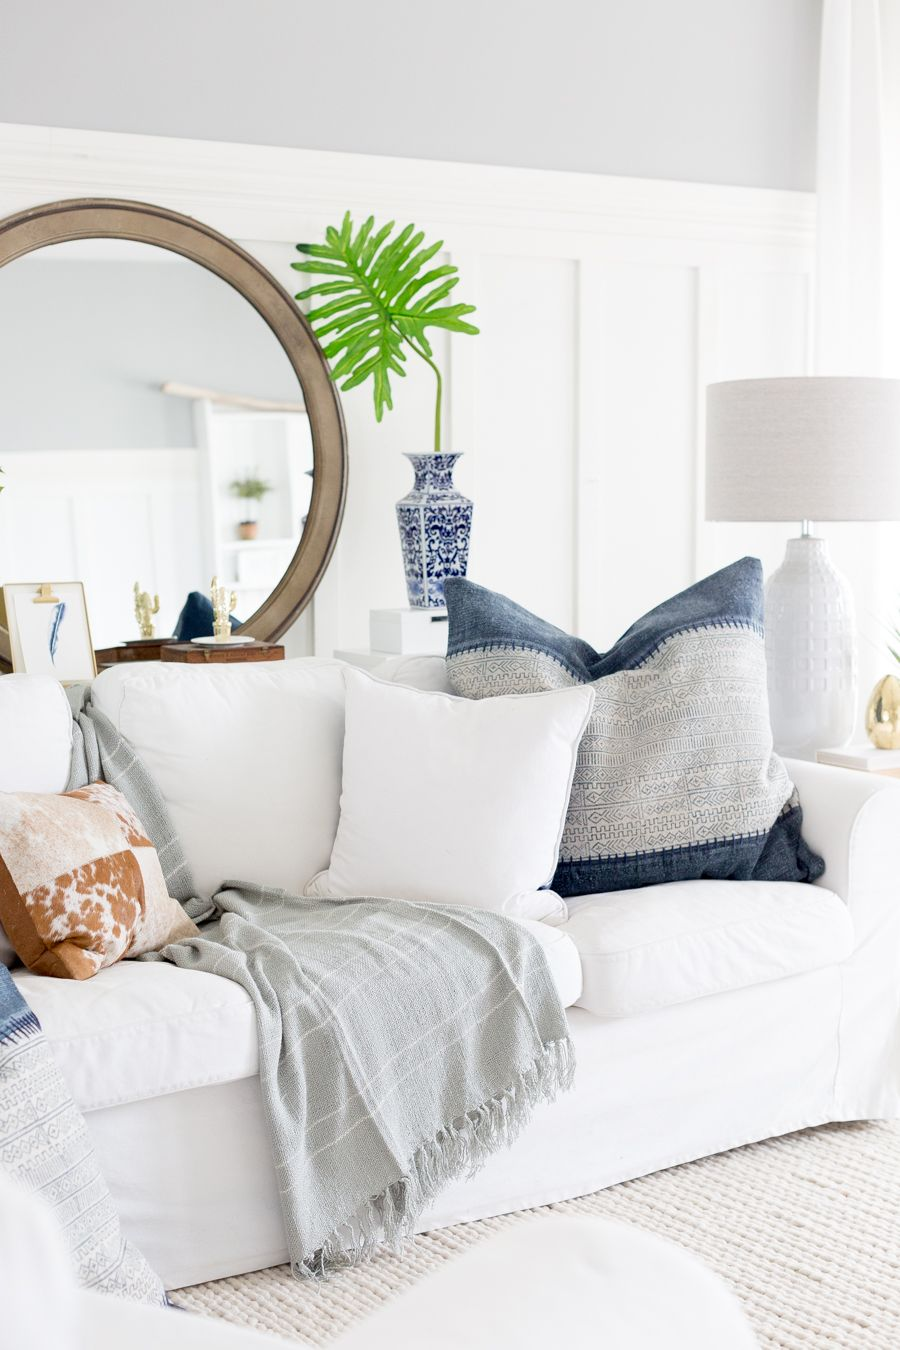 White Slipcovered Sofa Living Room Chairs India Large Mirror All Decor Cozy Ideas